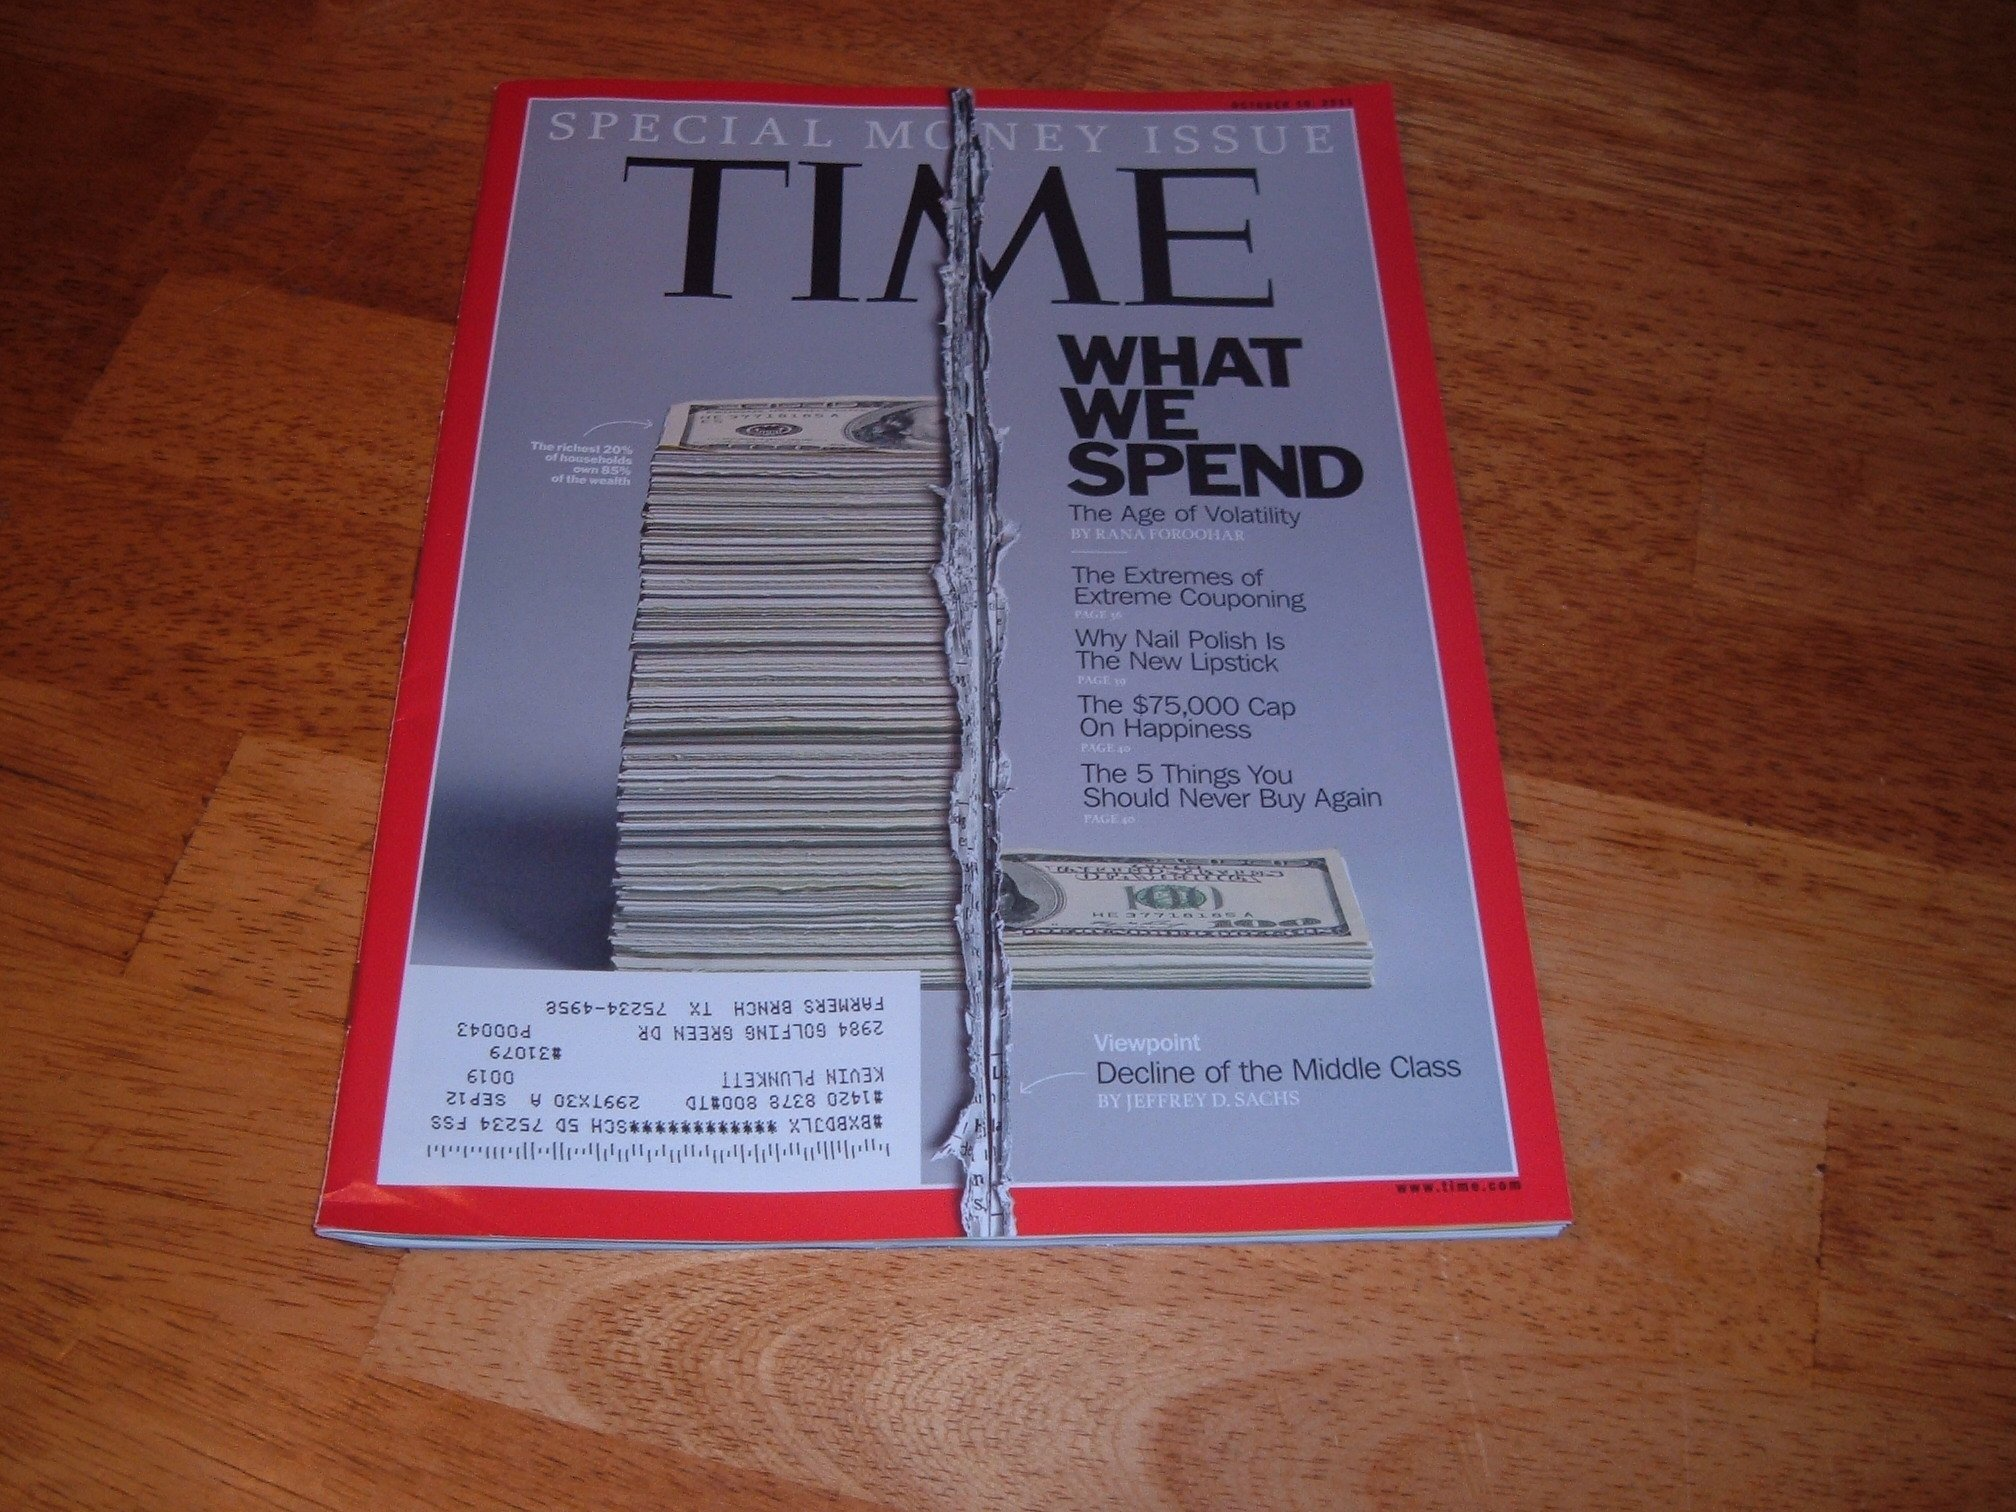 Download Time Magazine October 10, 2011 (What We Spend..Special Money Issue) ebook